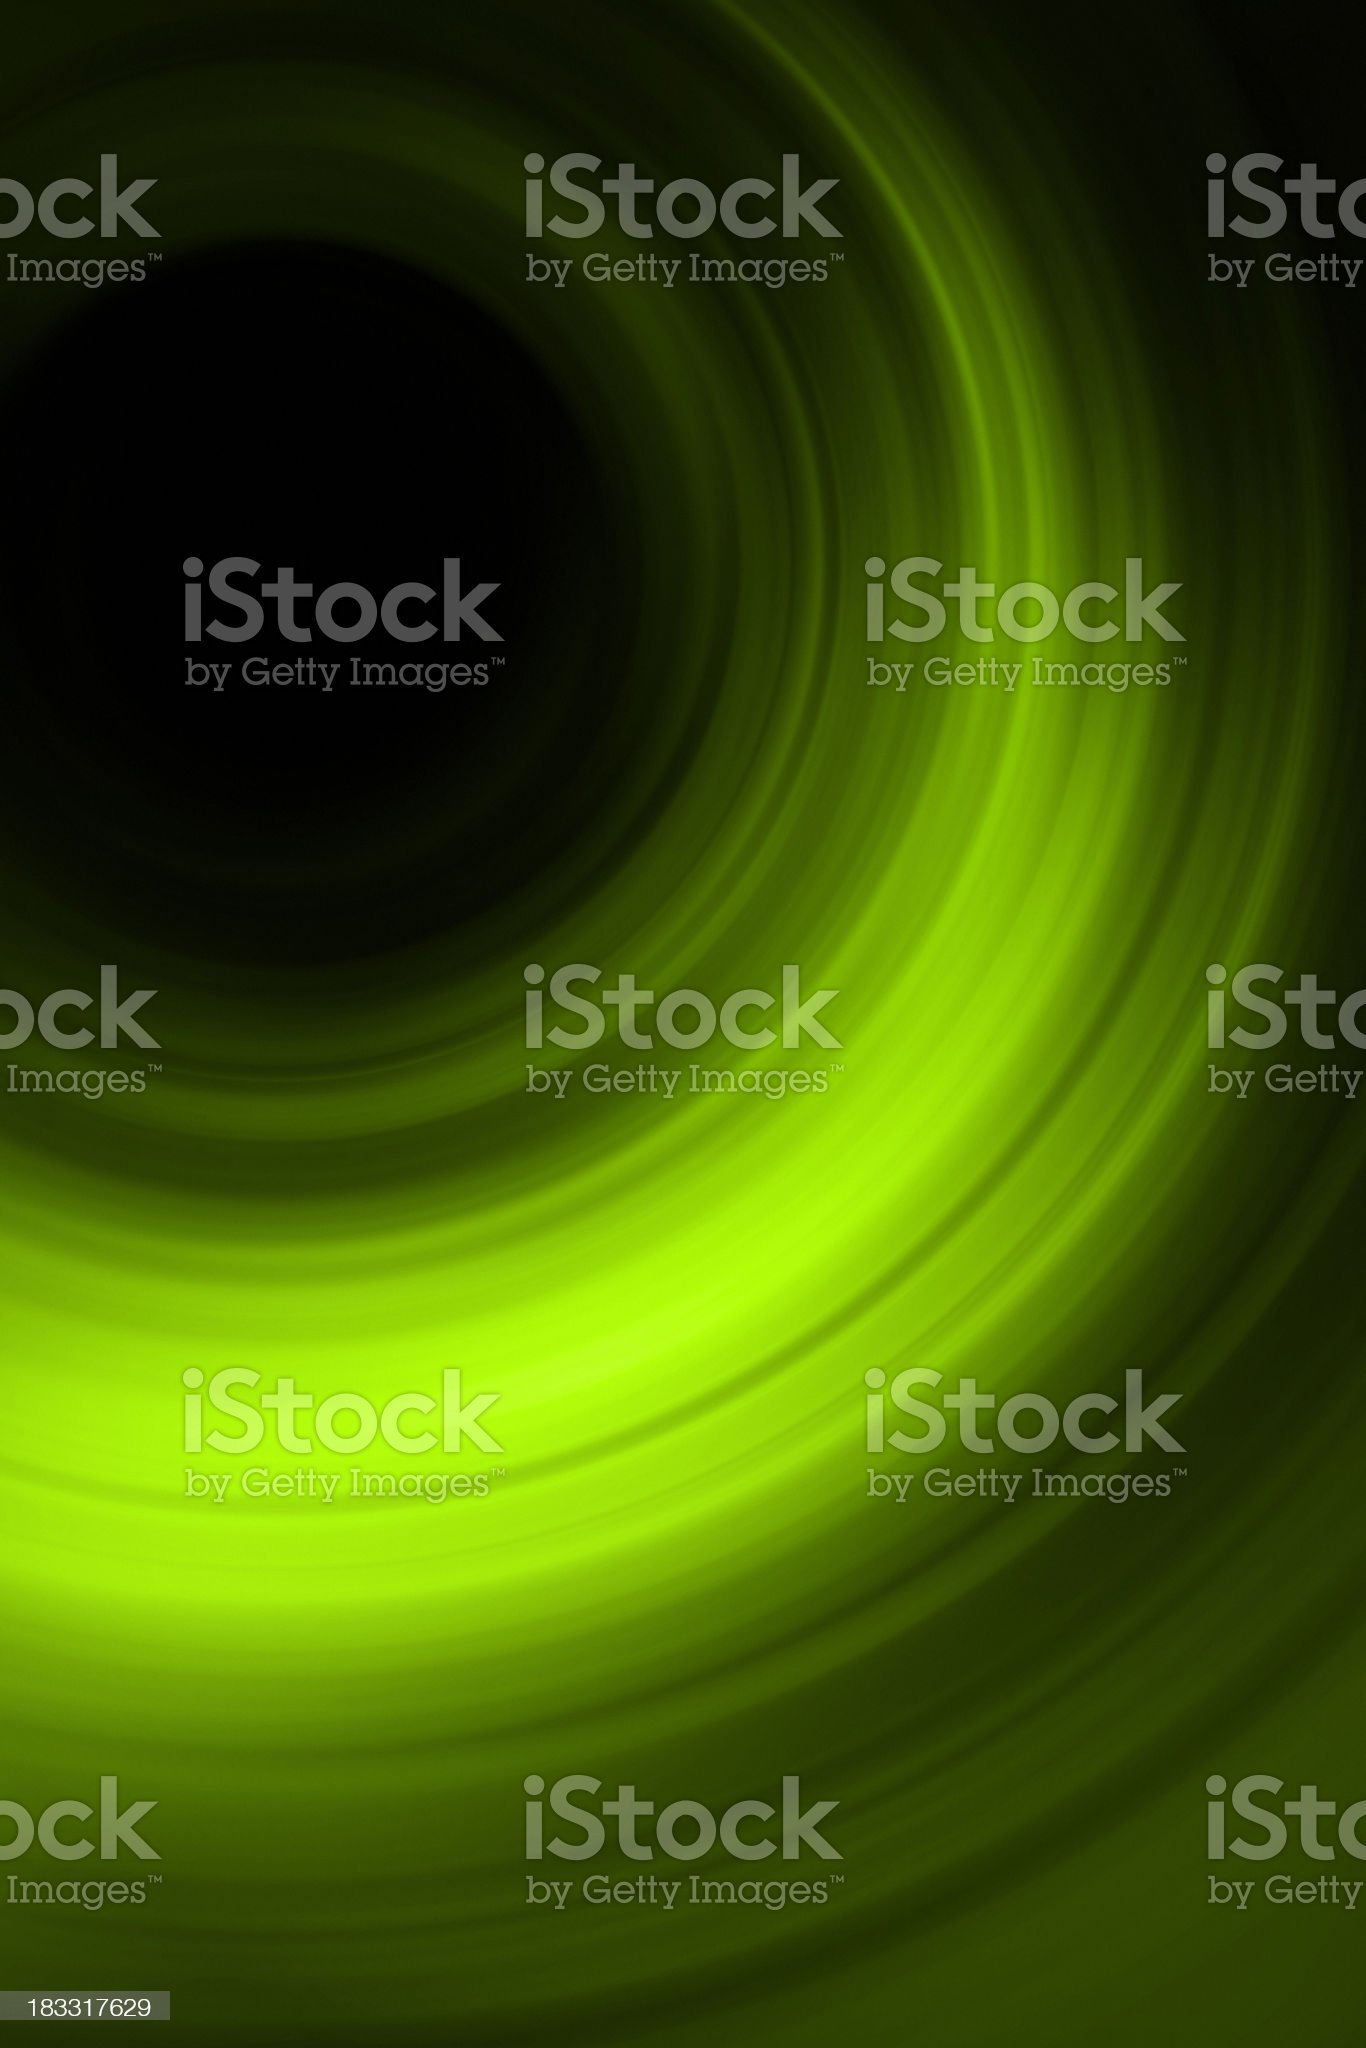 Abstract Green Blur Background royalty-free stock photo